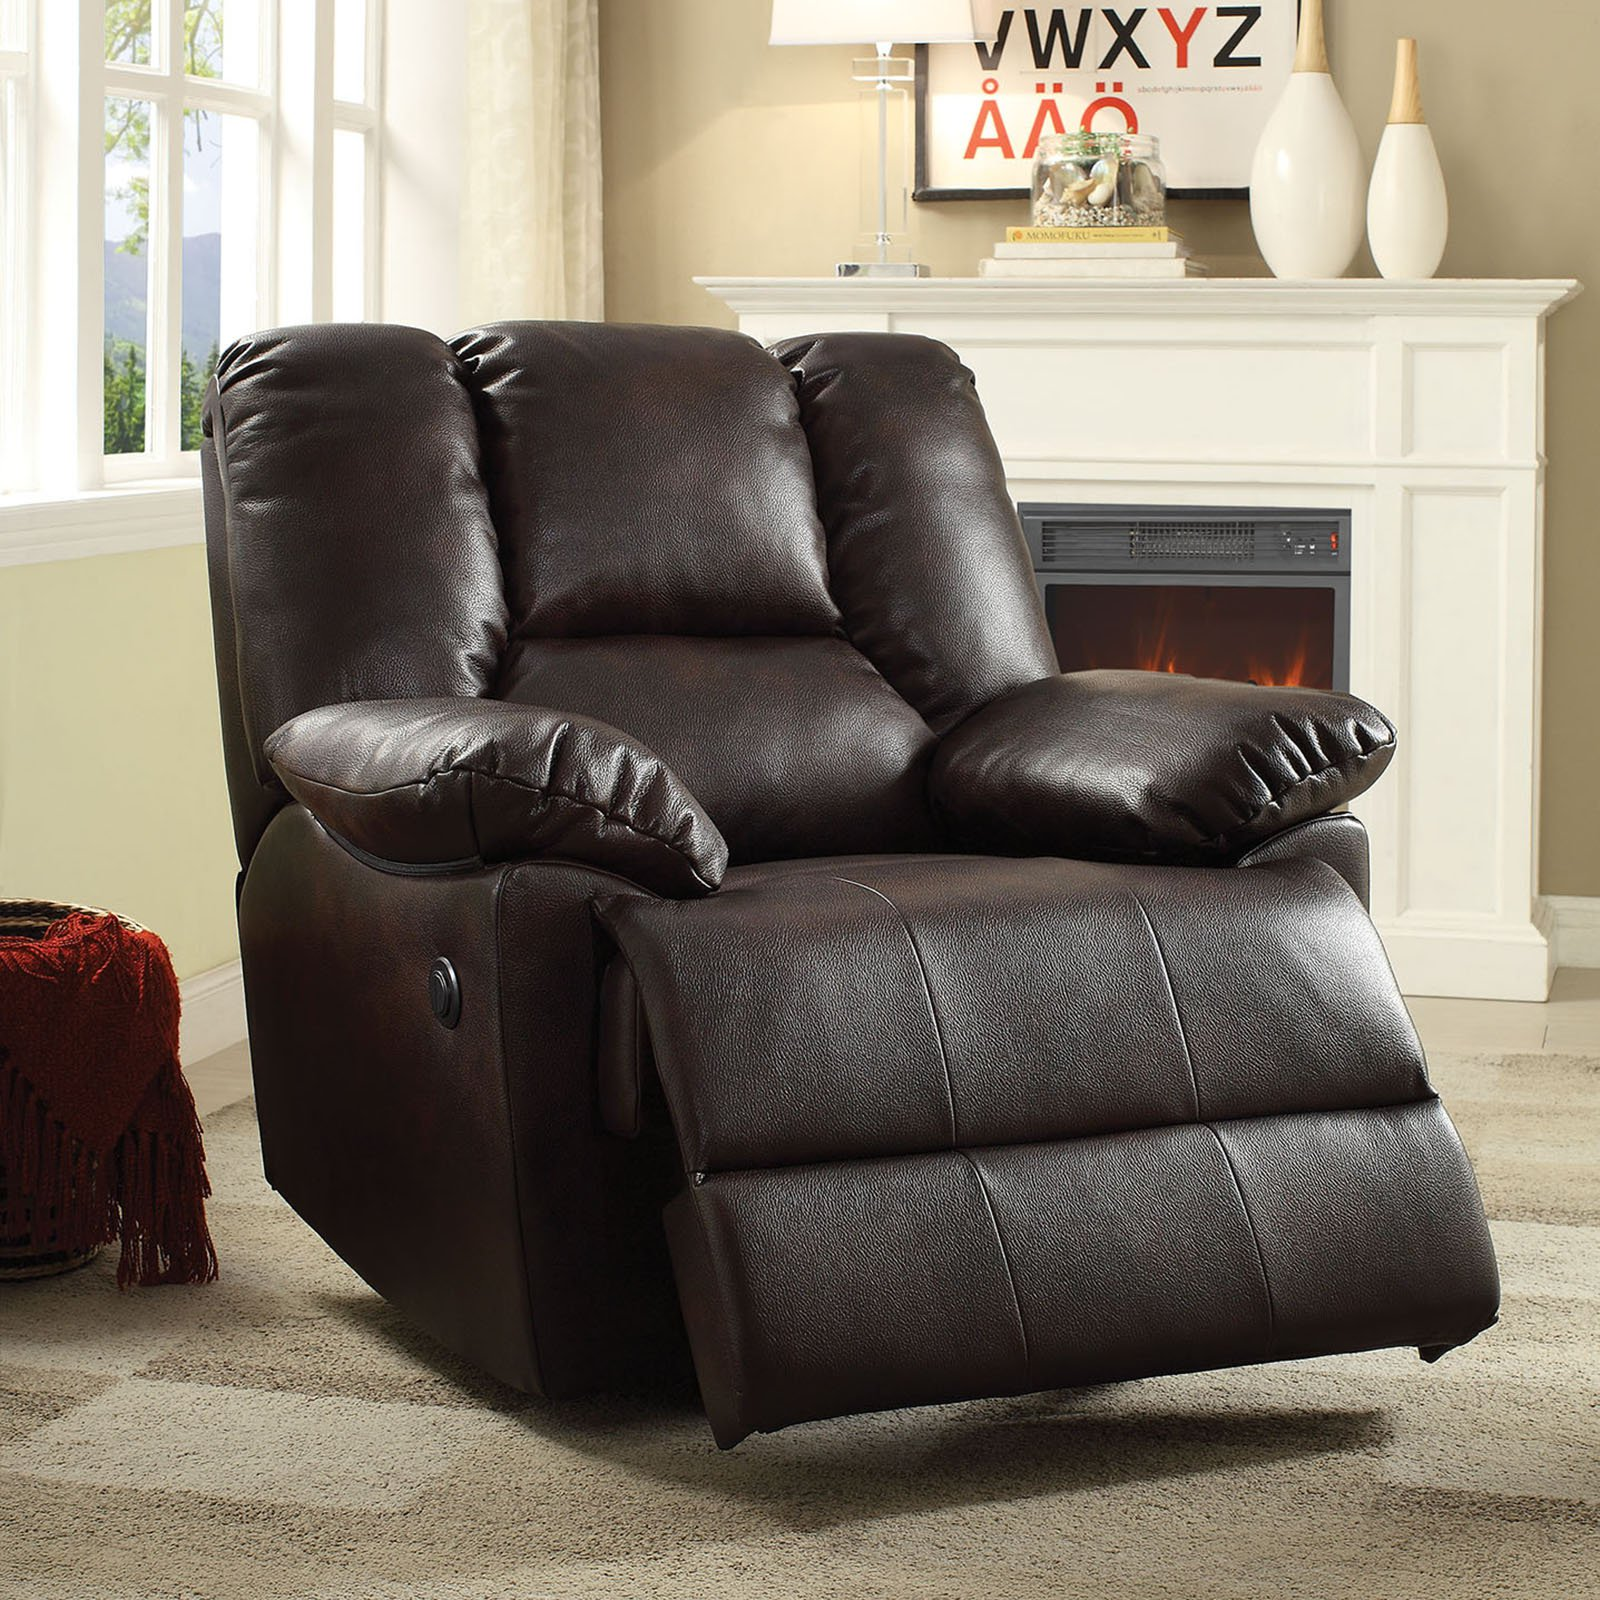 ACME Oliver Power Recliner, Dark Brown Leather-Aire by Overstock